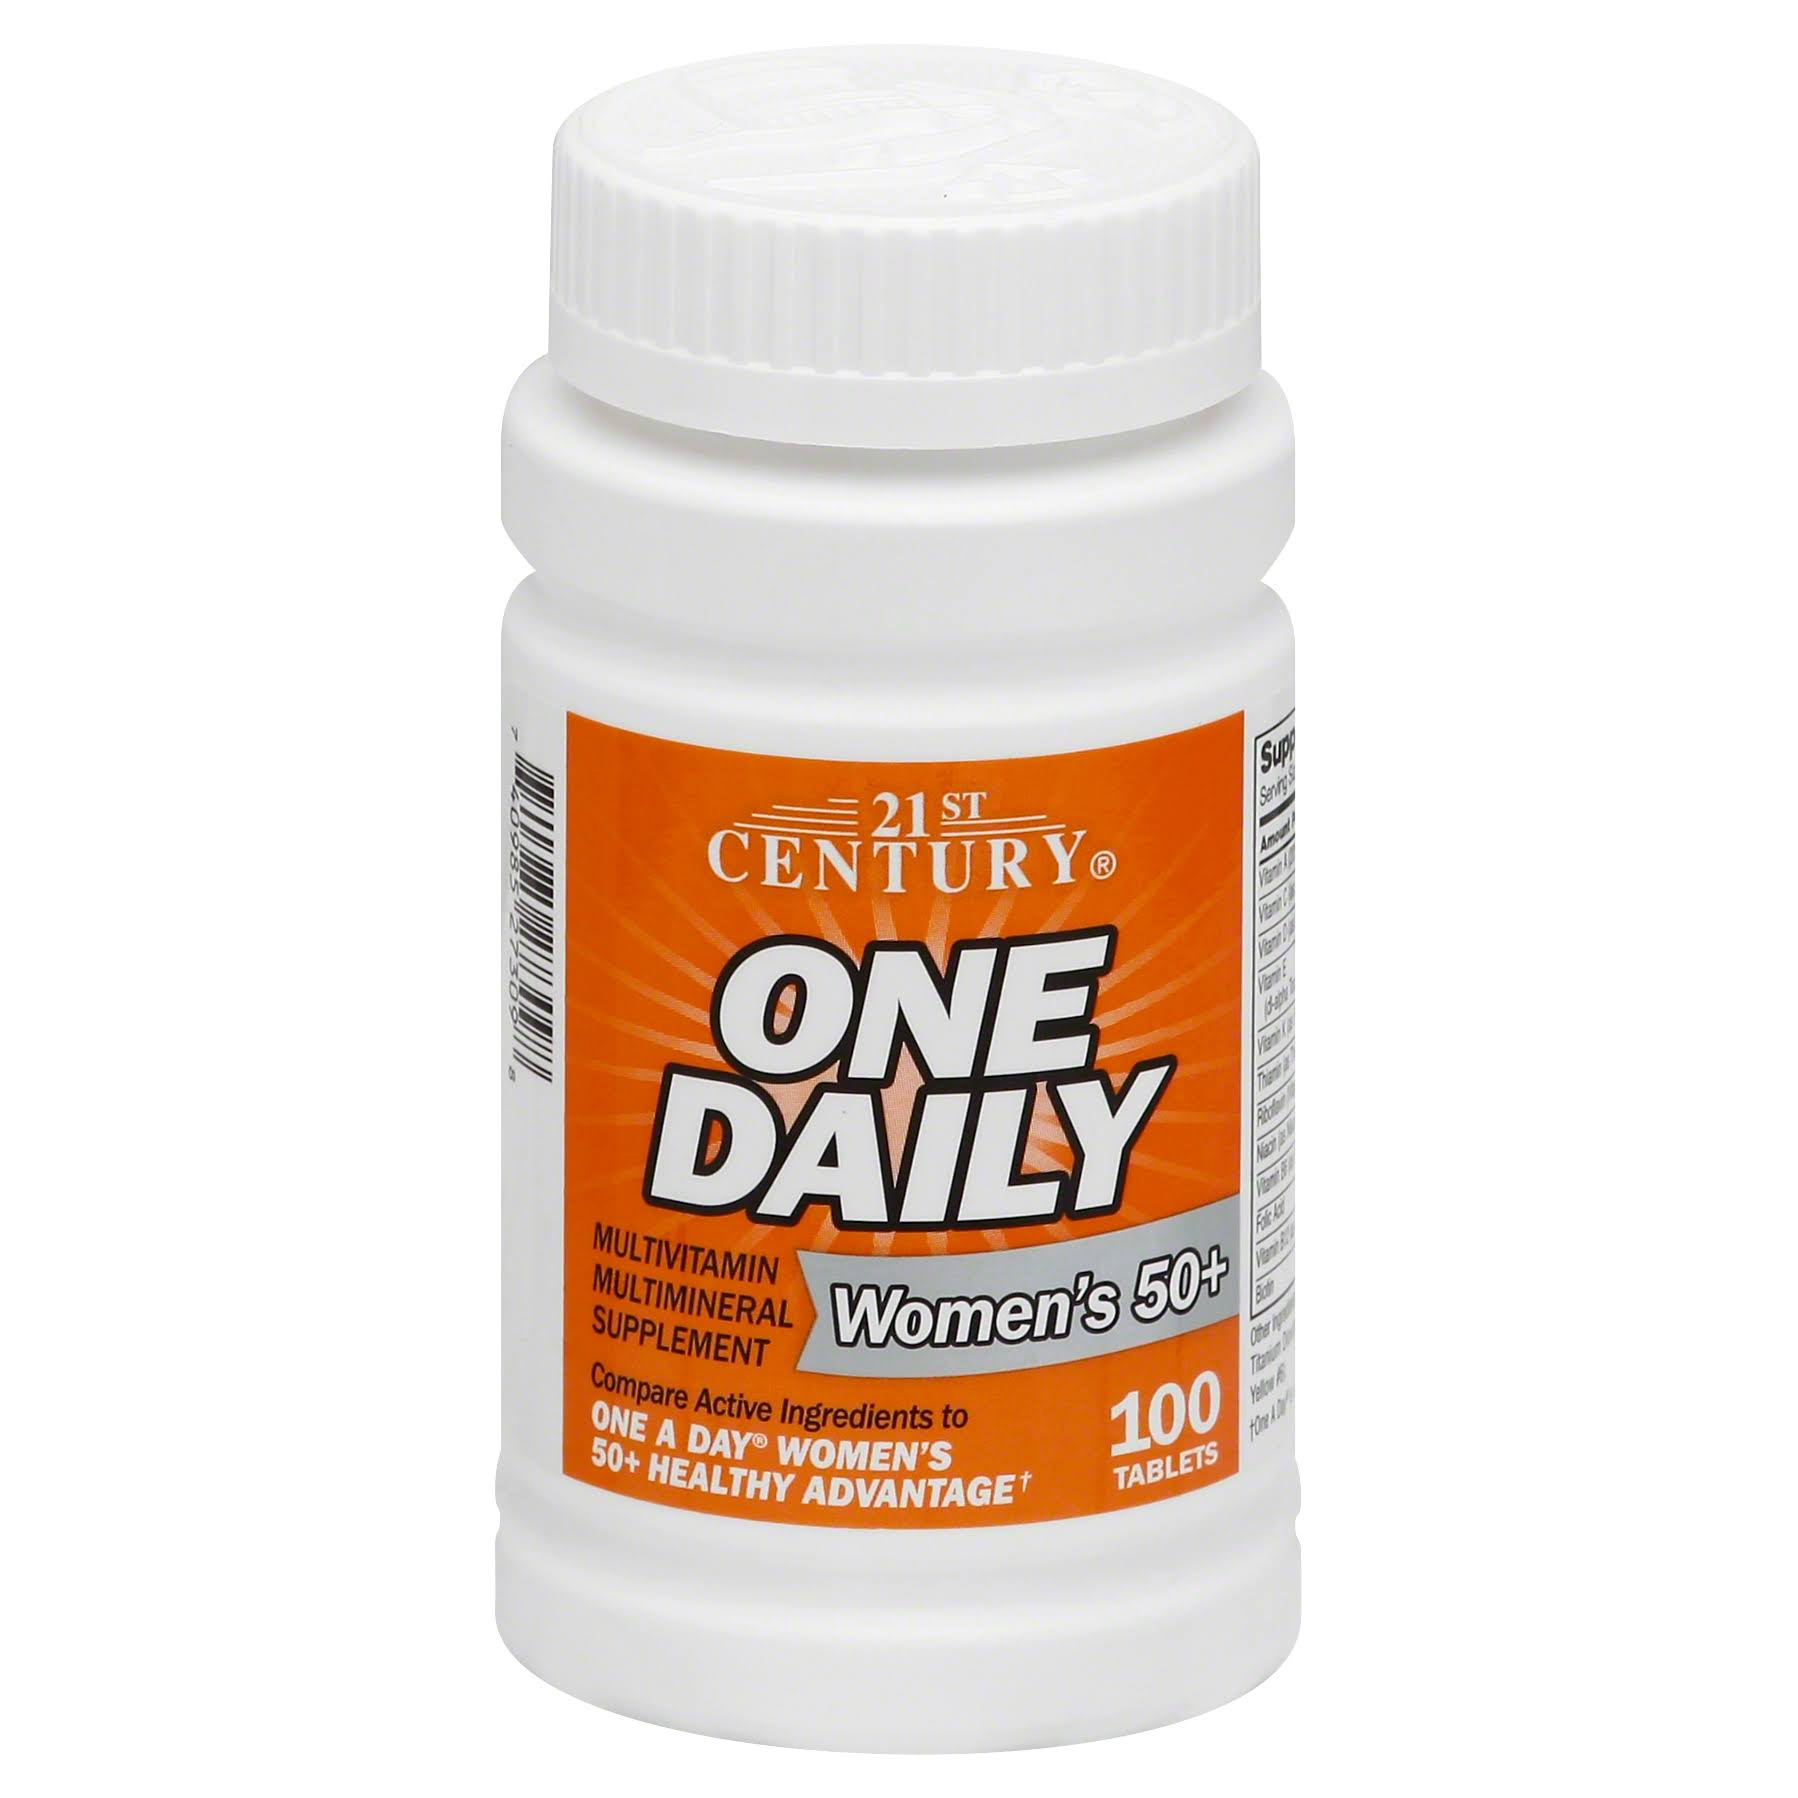 21st Century One Daily Women's 50+ Dietary Supplement - 100 Tablets